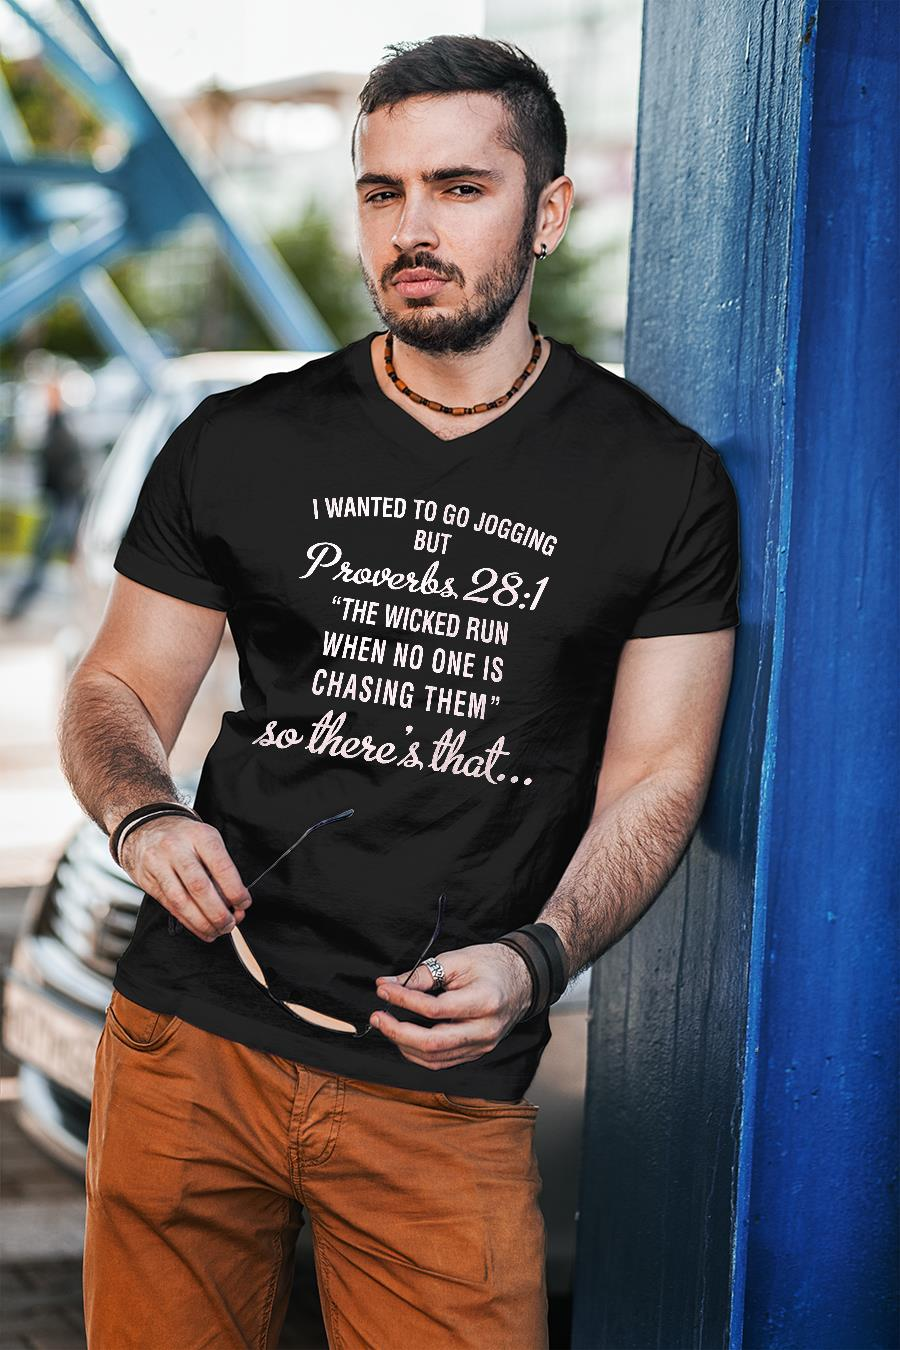 The Wicked Run When No One Is Chasing them shirt unisex